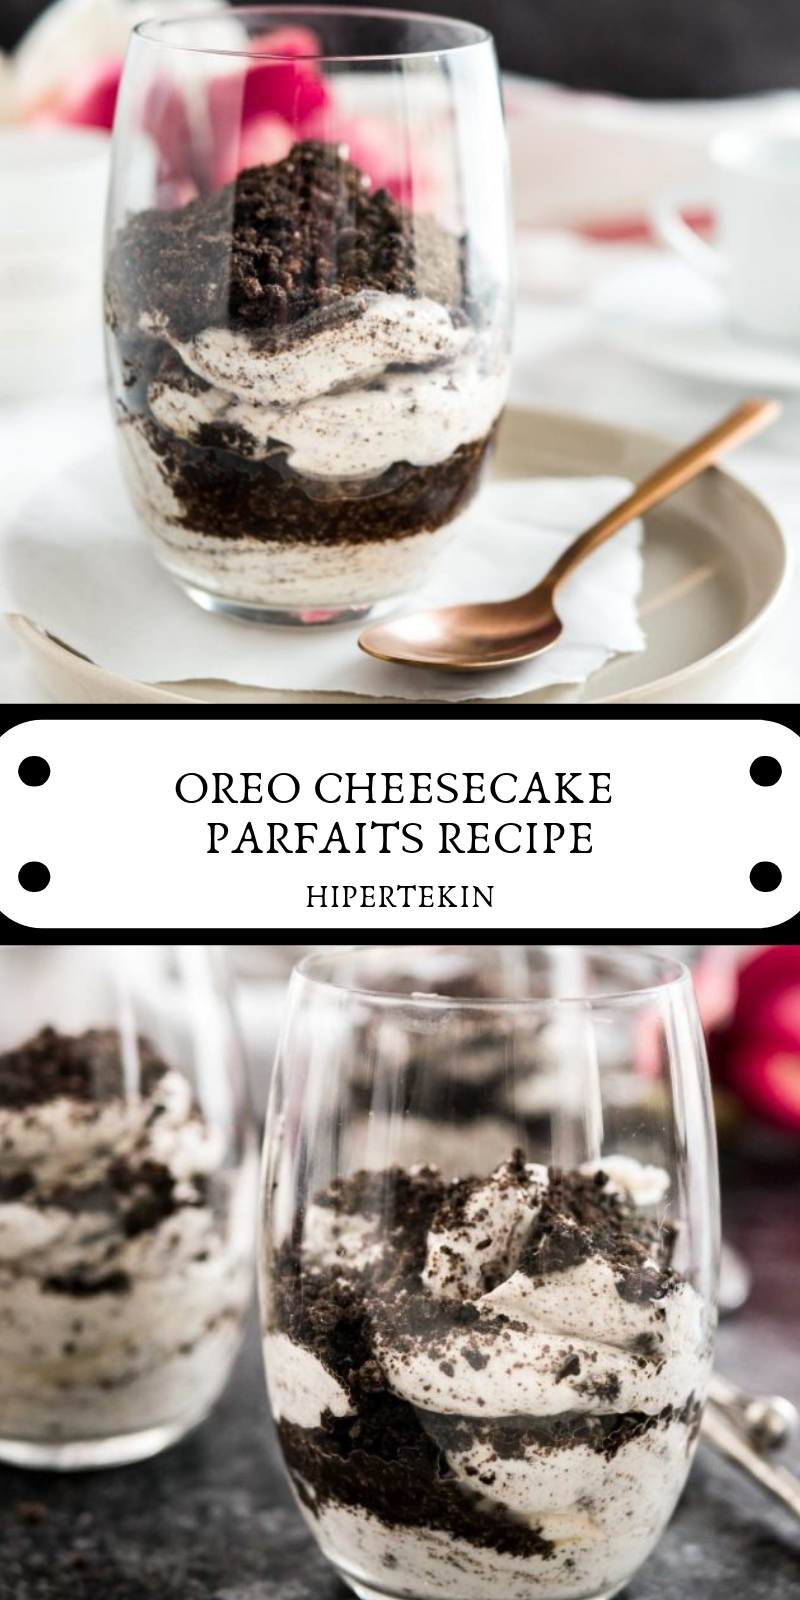 OREO CHEESECAKE PARFAITS RECIPE